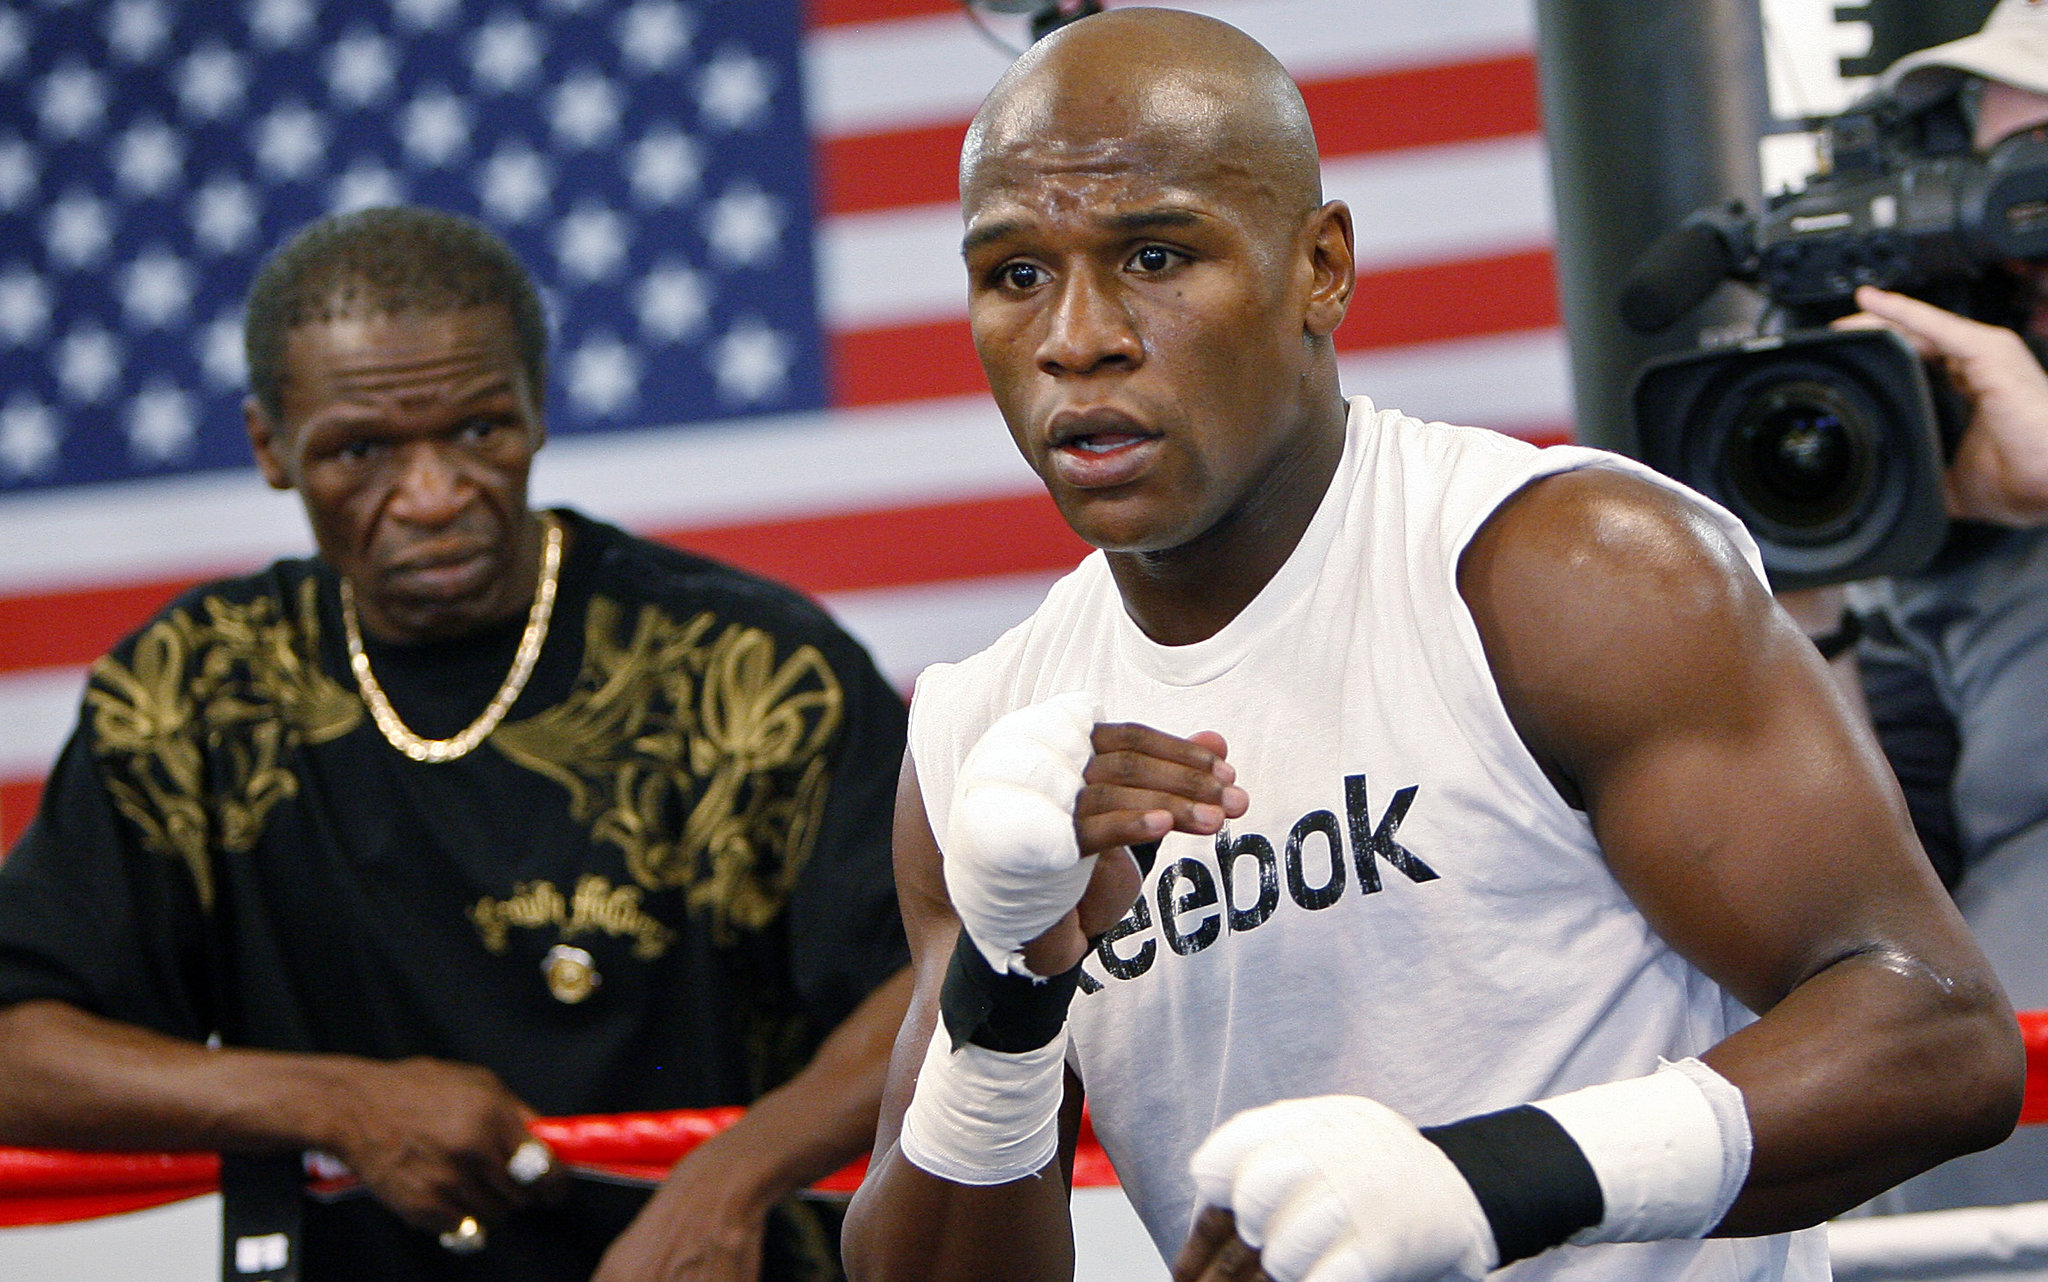 UFC: Mayweather Sr says there's a lot of interest for Mayweather vs McGregor II - Floyd